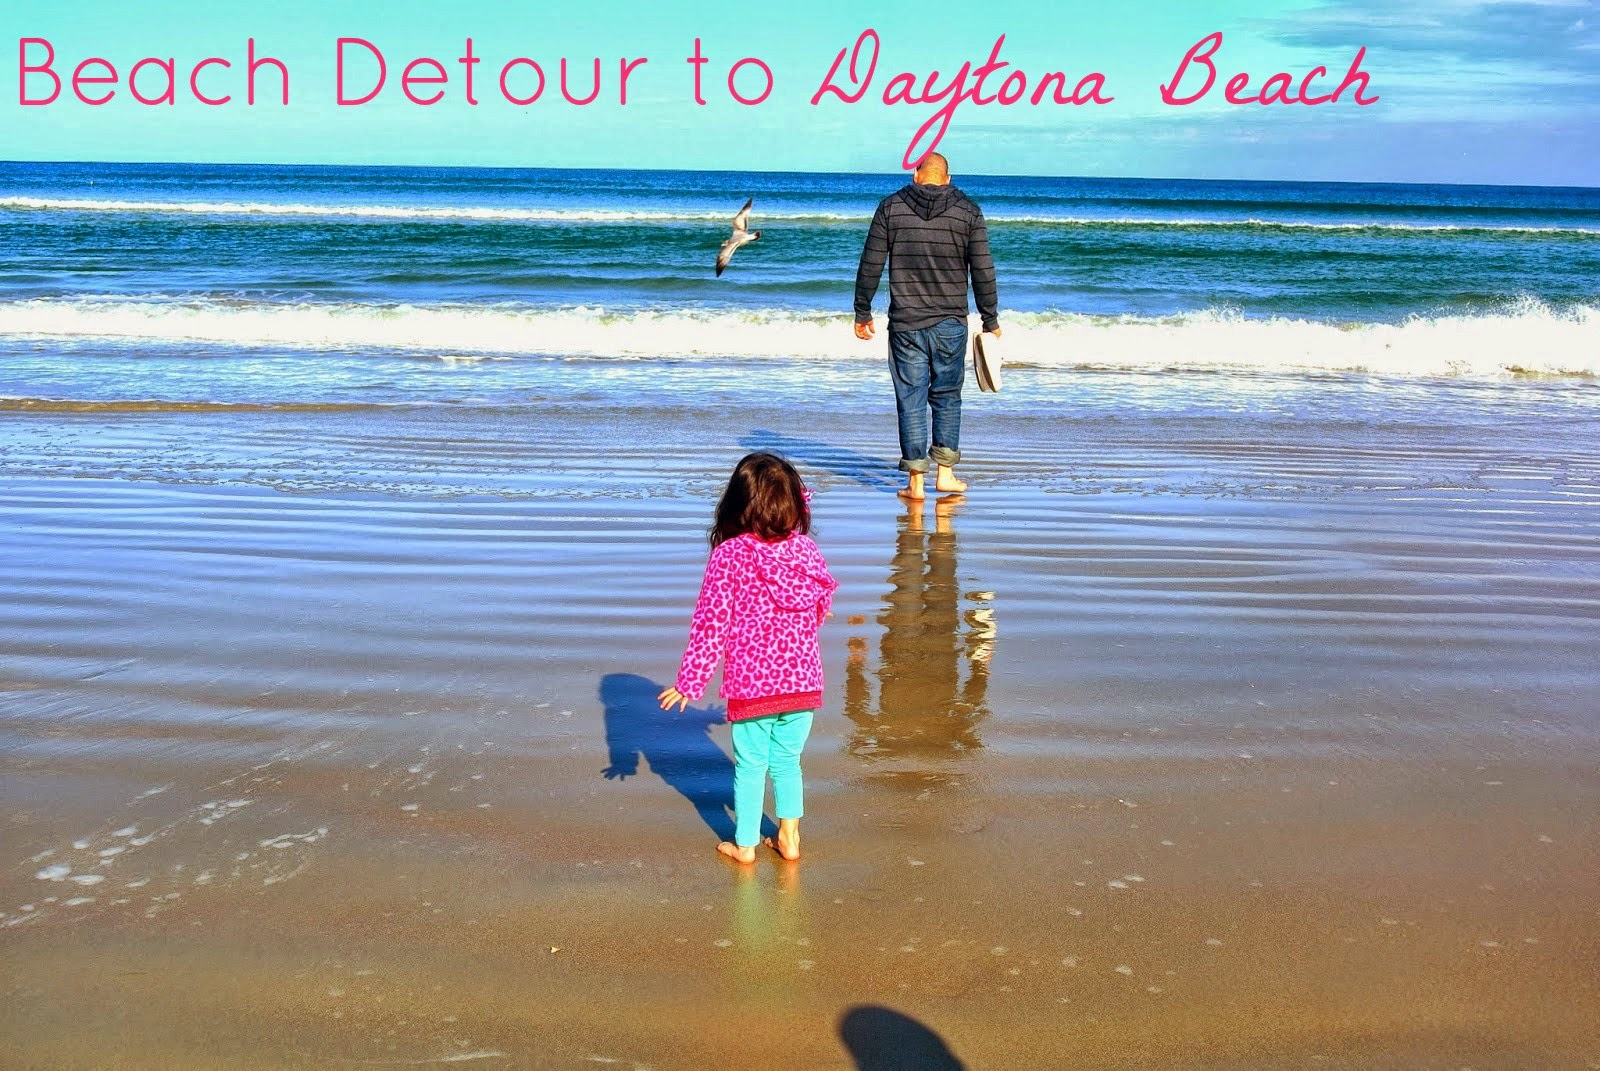 http://b-is4.blogspot.com/2014/01/beach-detour-to-daytona-beach.html